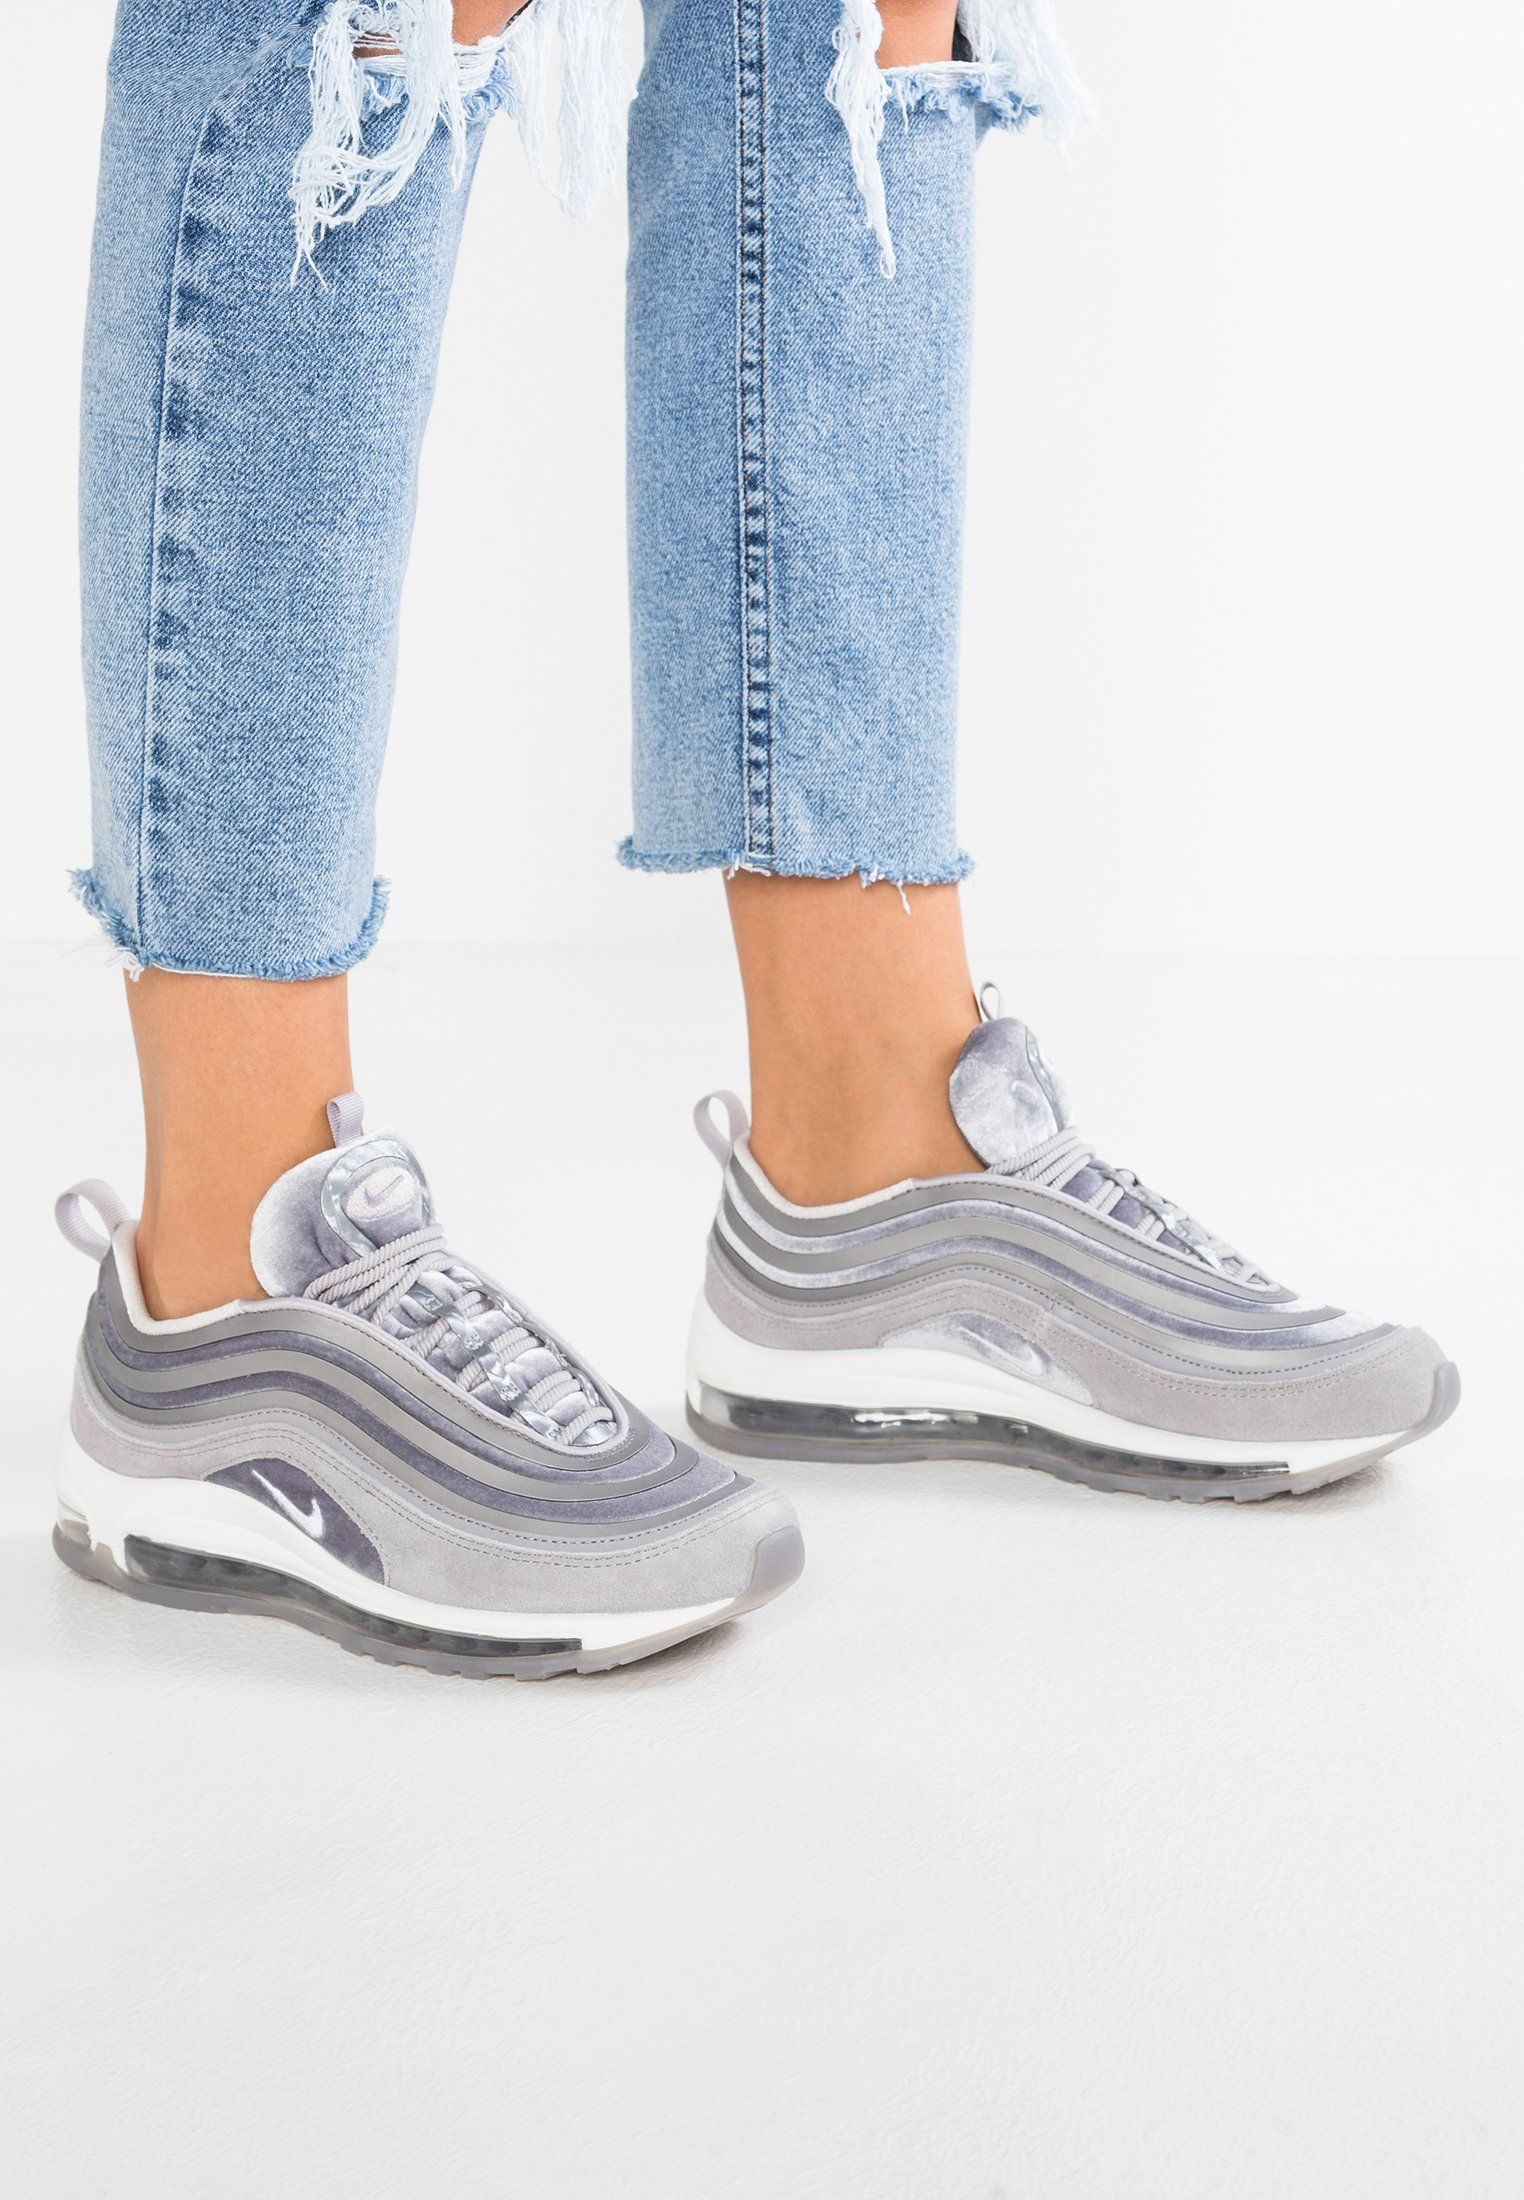 Chaussures Nike Sportswear AIR MAX 97 UL 17 LX - Baskets basses -  gunsmoke/summit